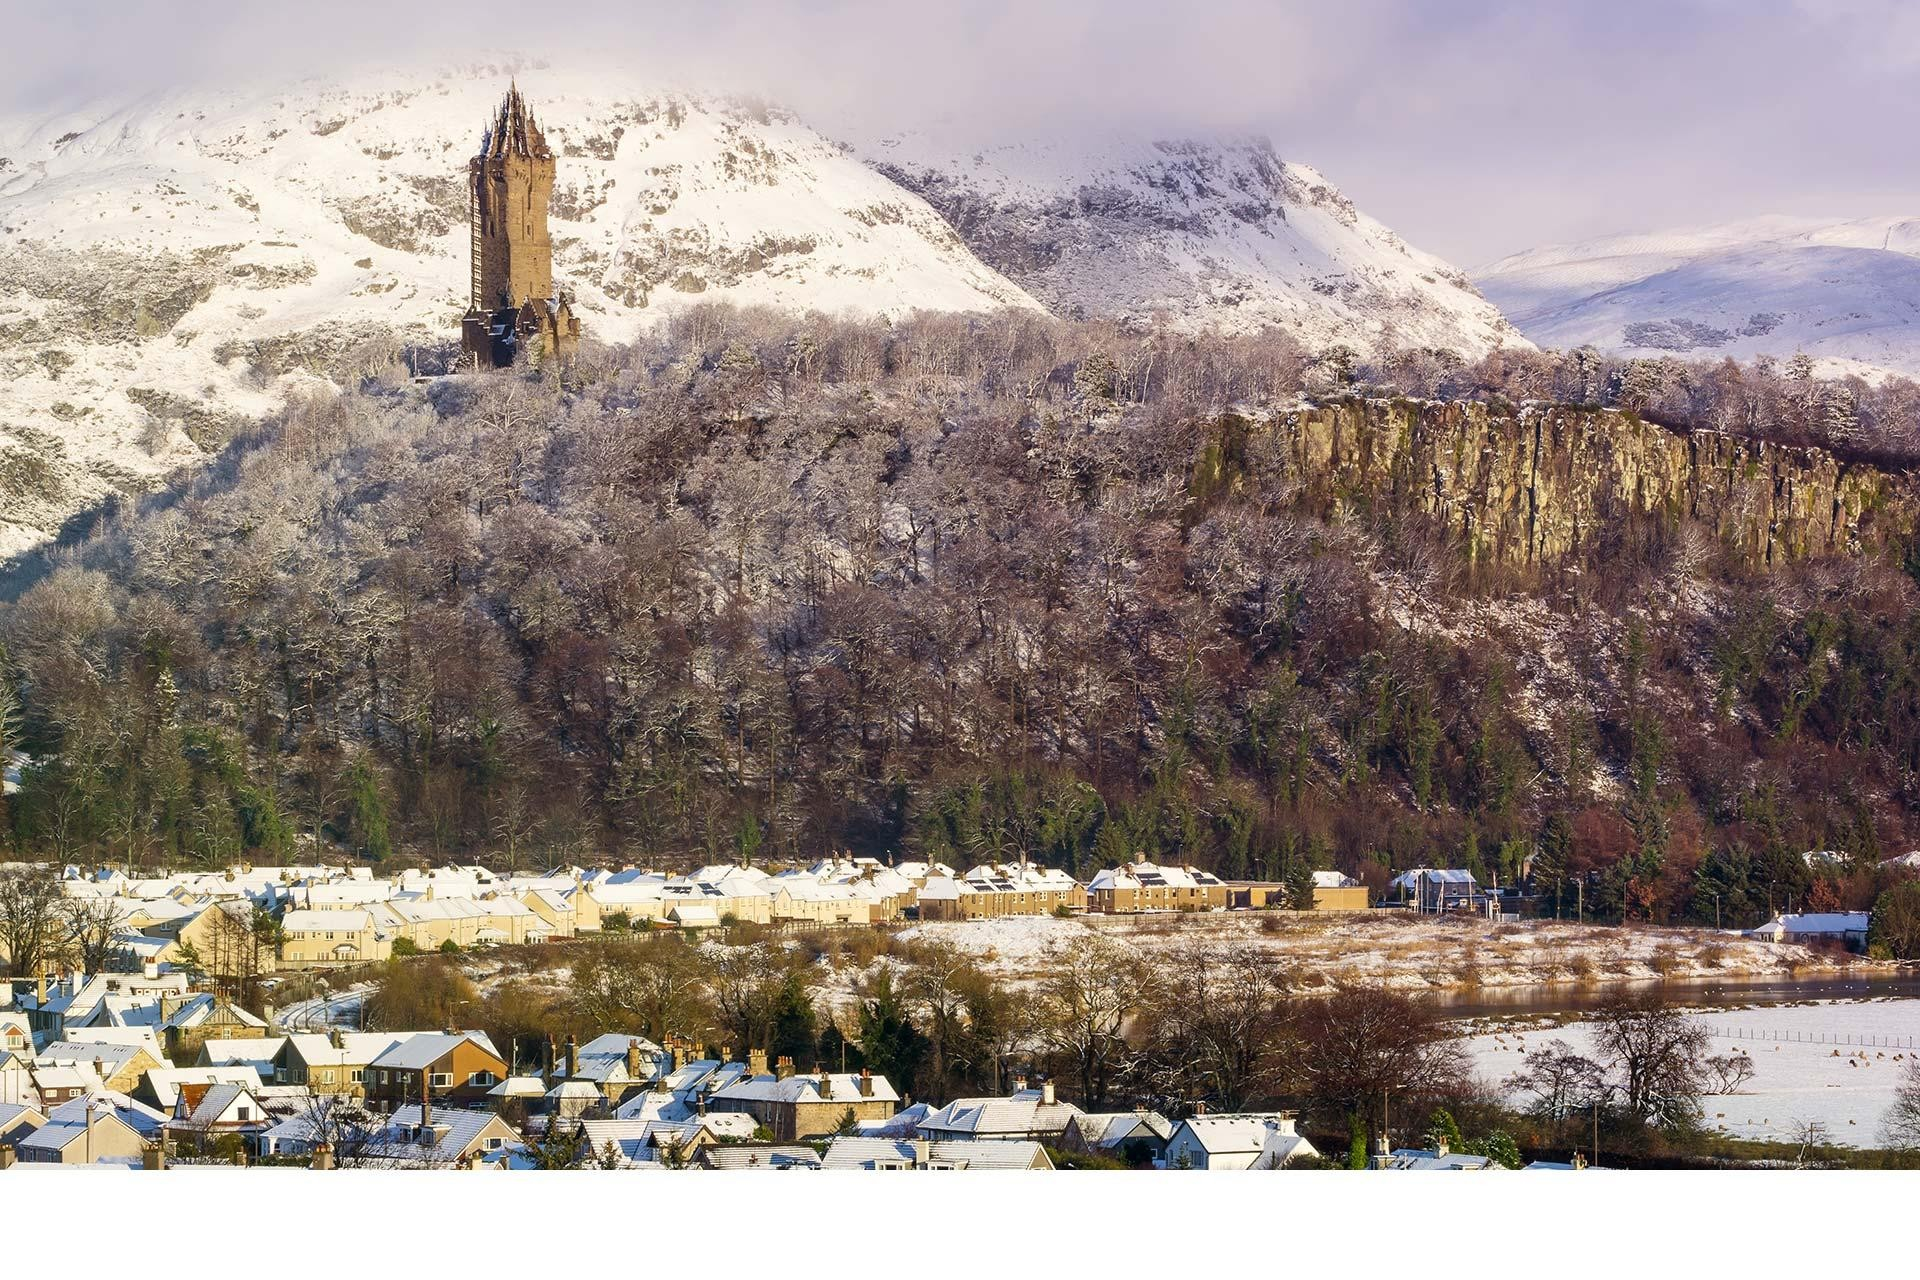 national wallace monument winter